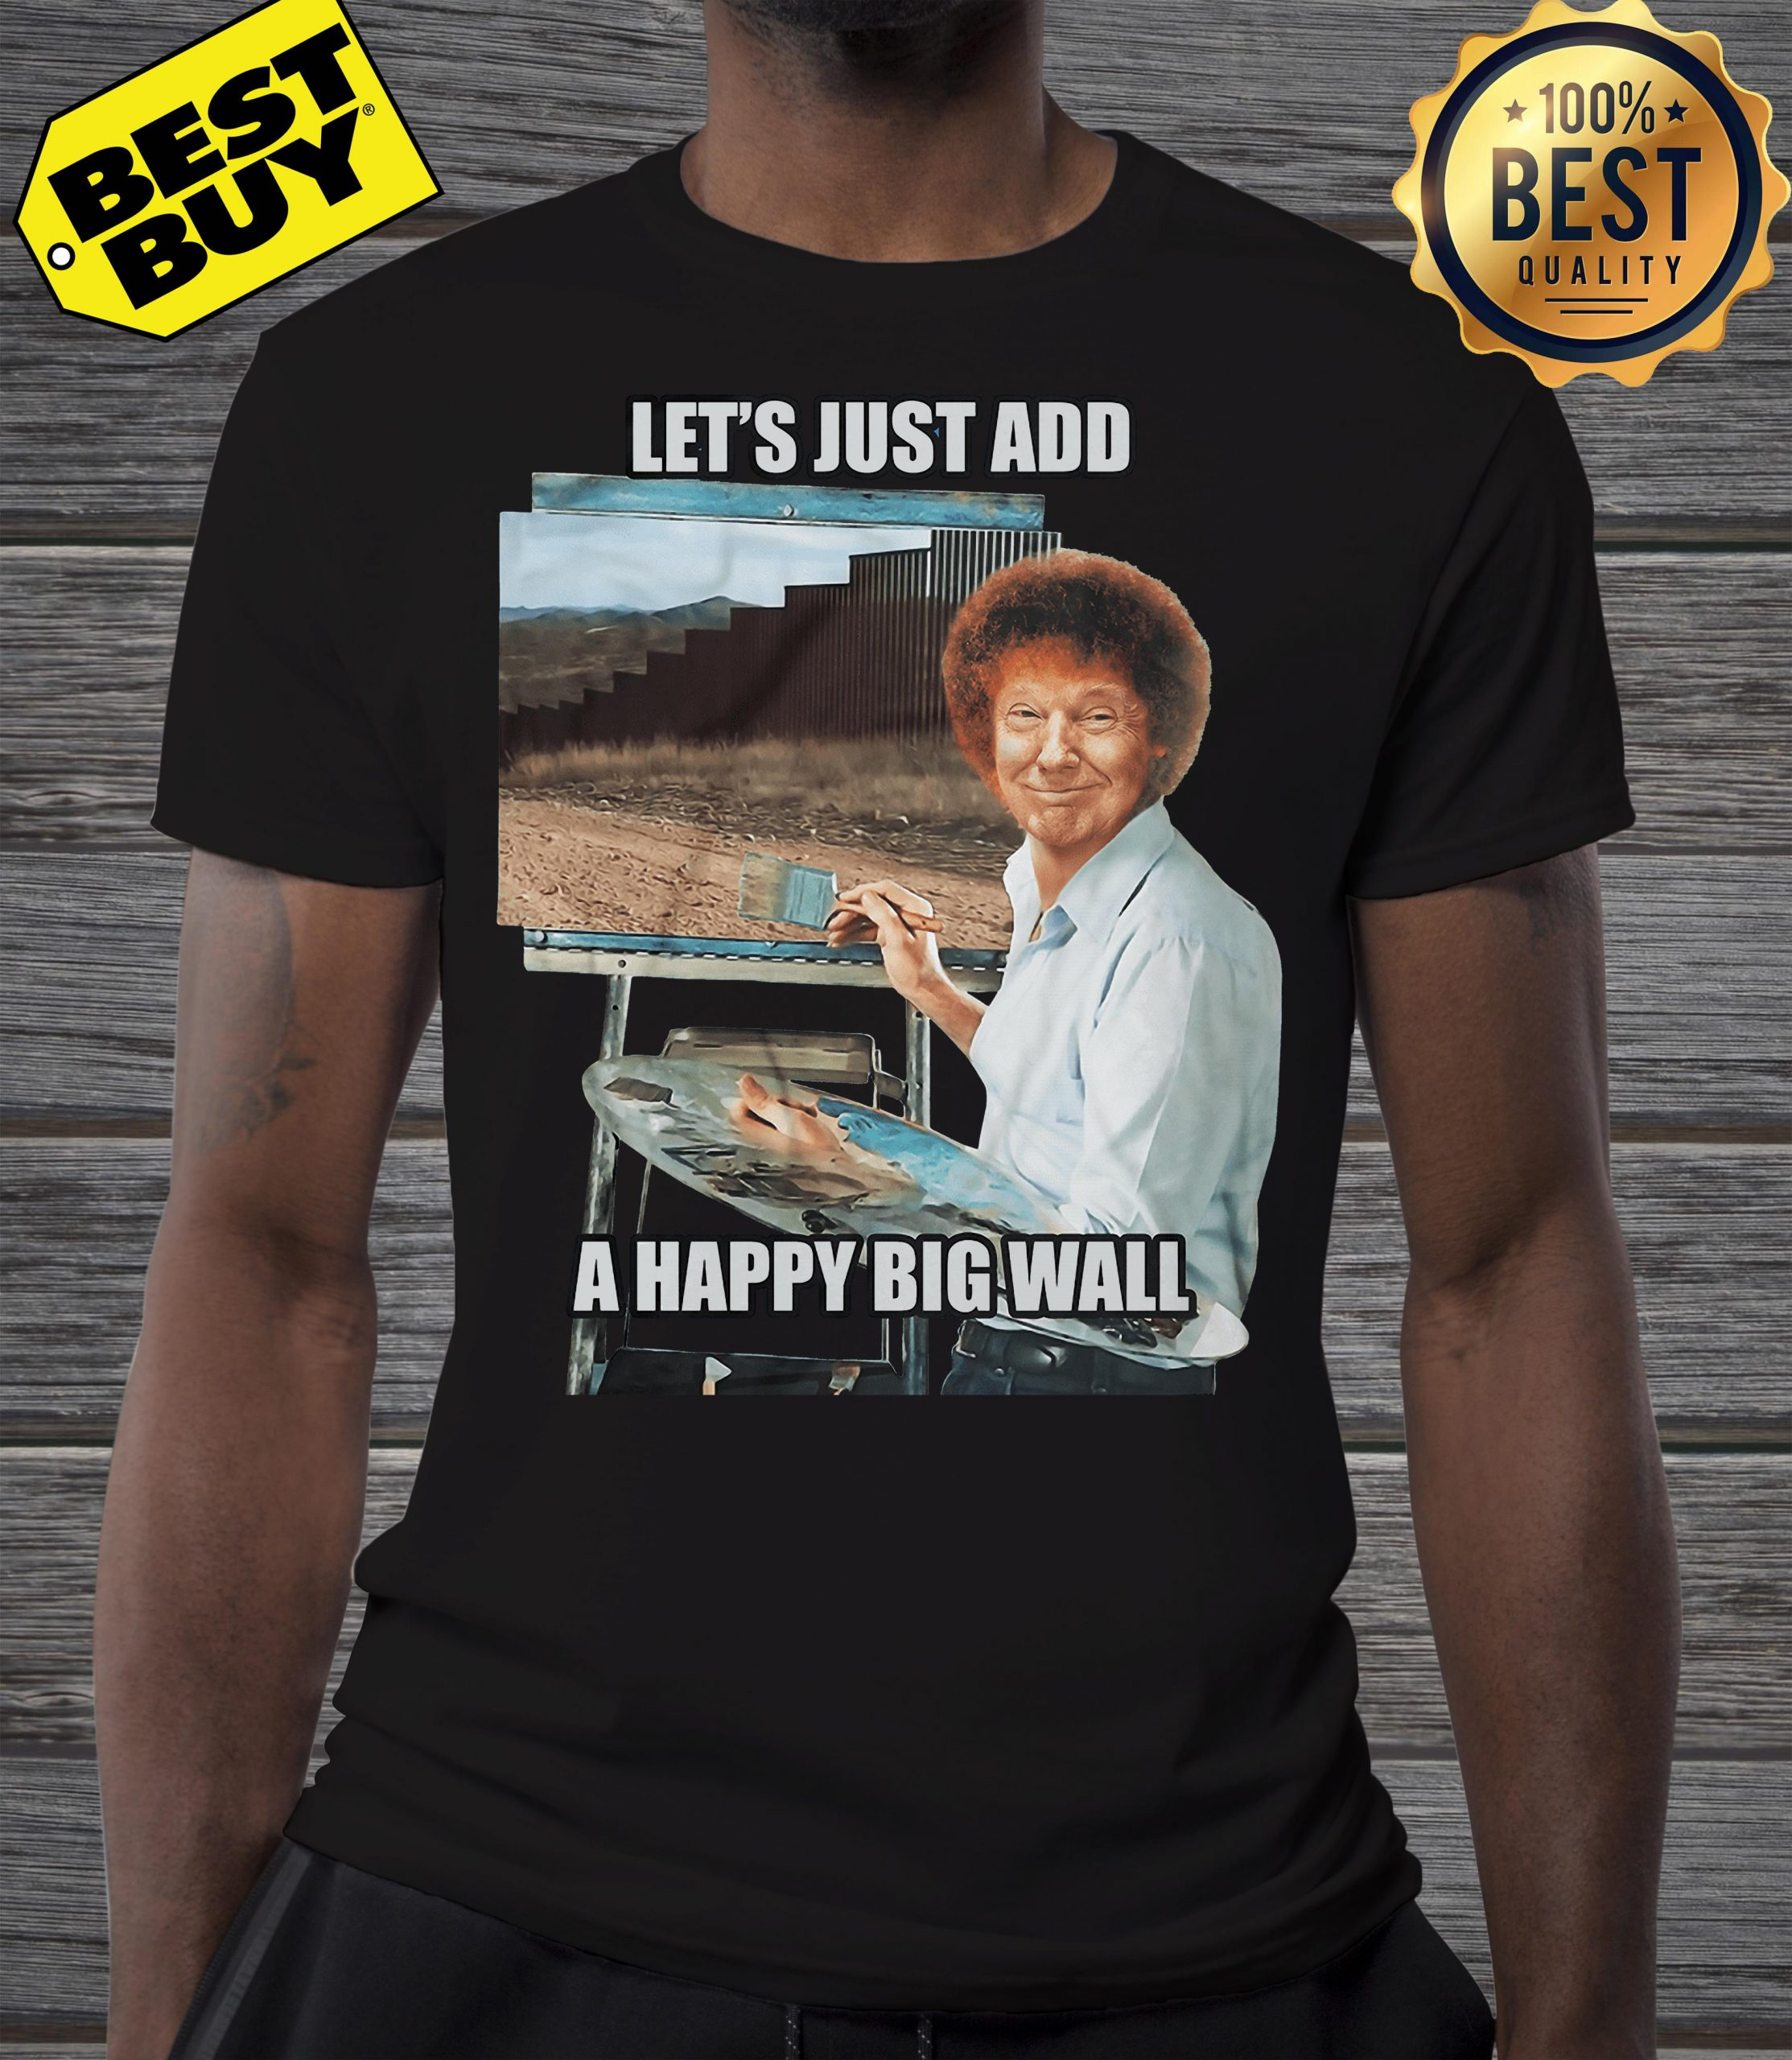 Bob Ross Trump the painter of the wall let's just add a happy big wall shirt